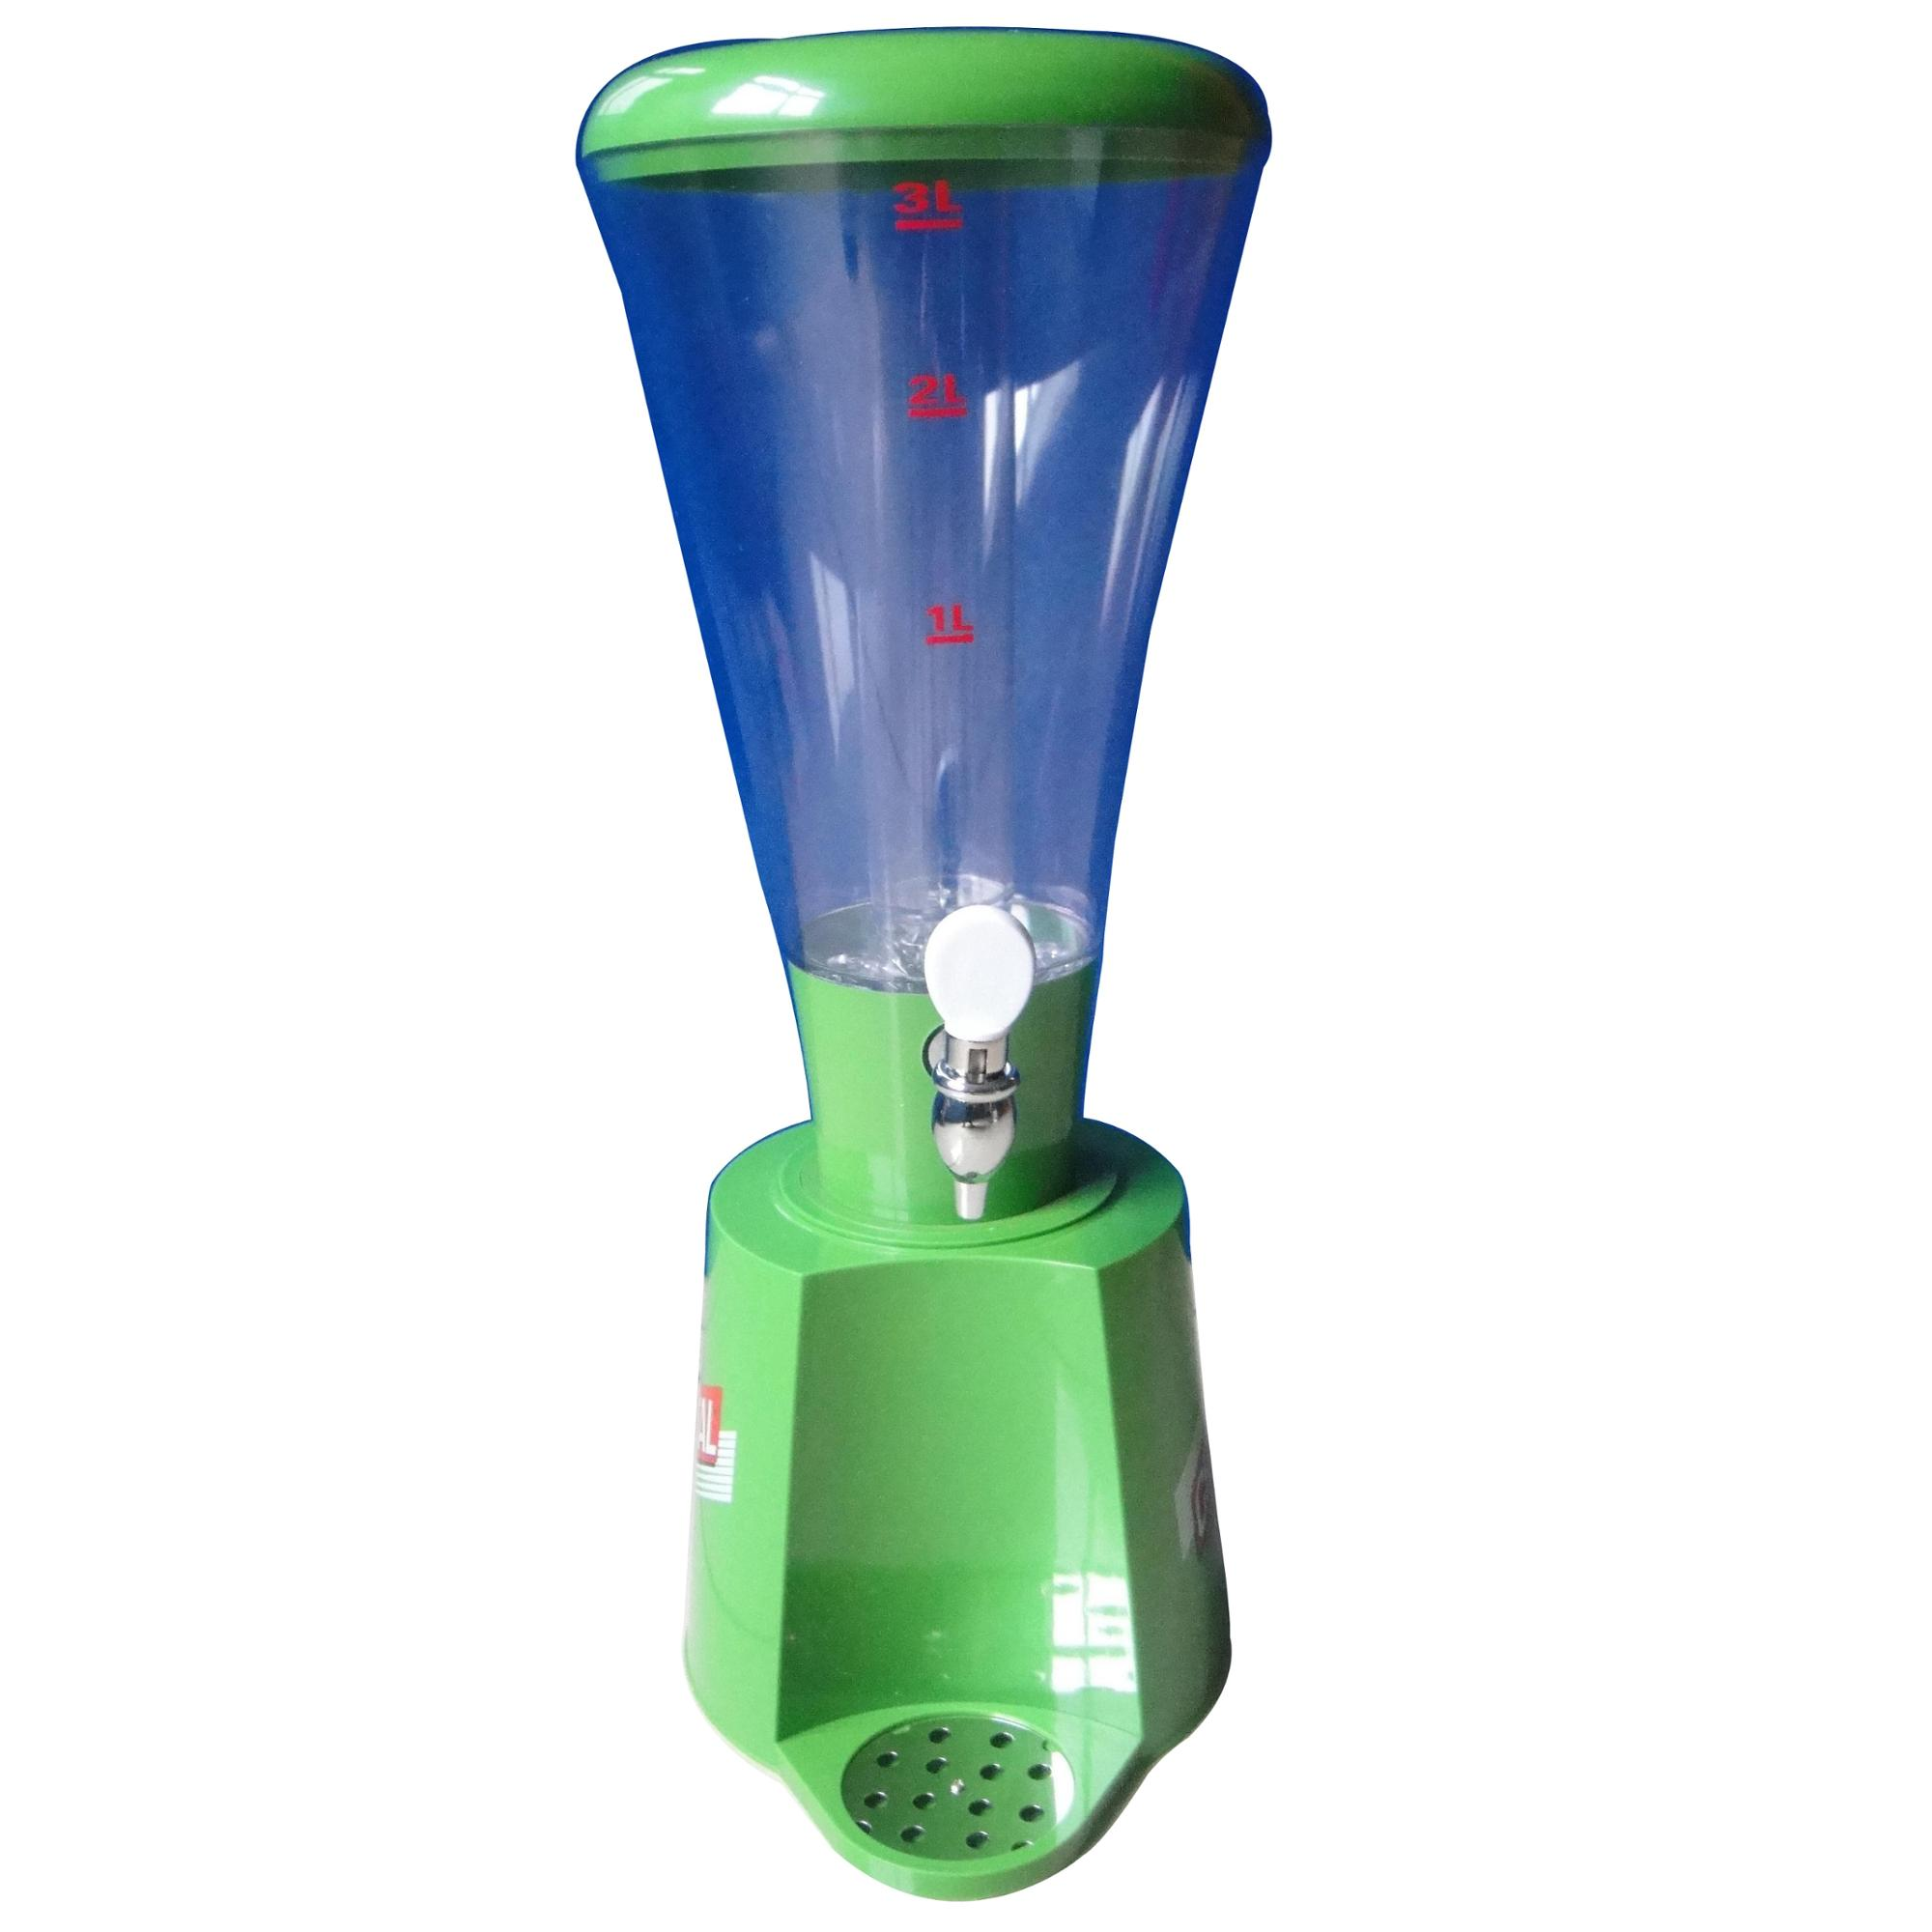 2.5L Cheap plastic beer tower or juice dispenser with led